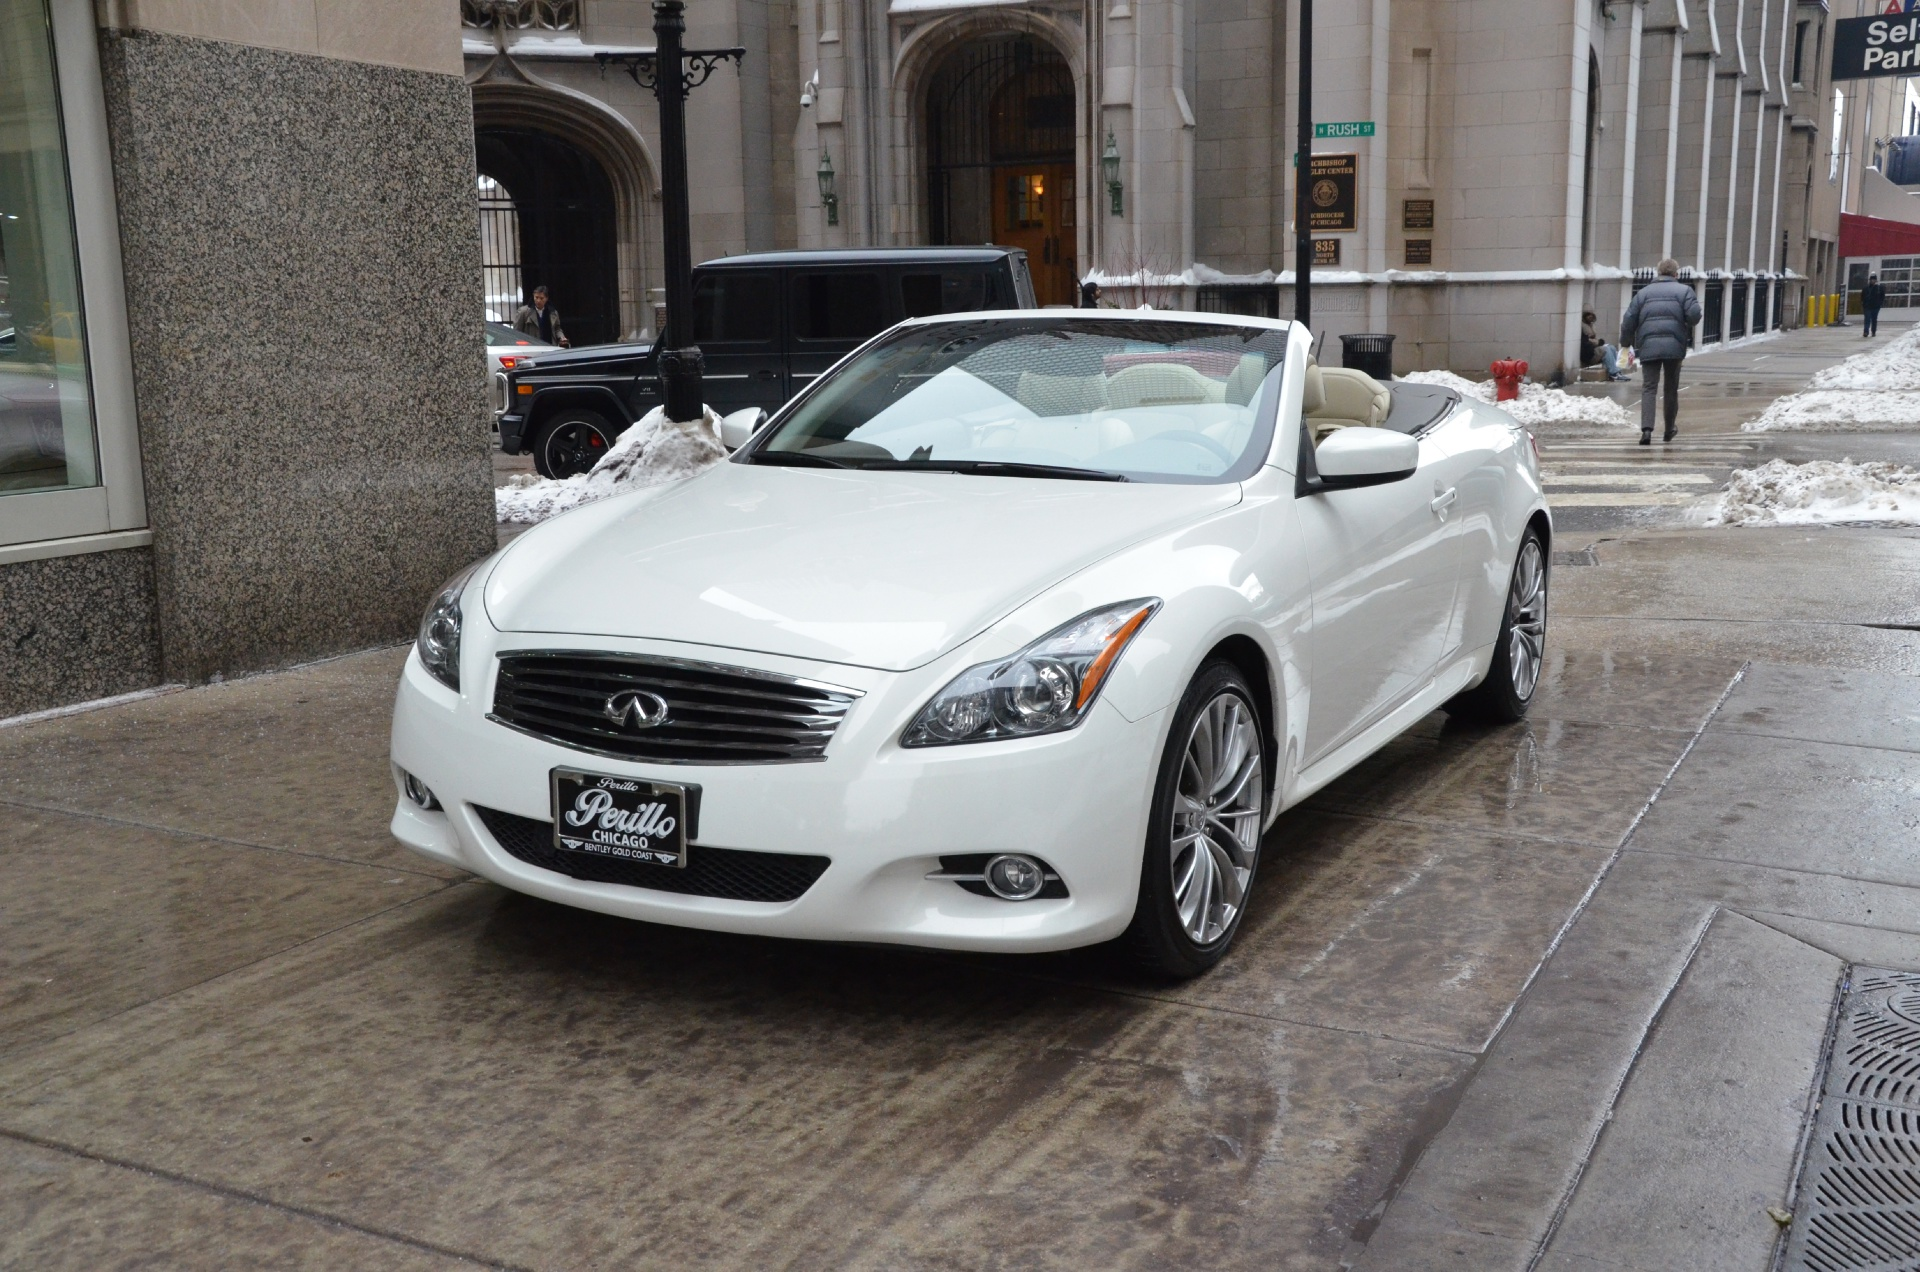 infinity review g coupe infiniti parkers convertible